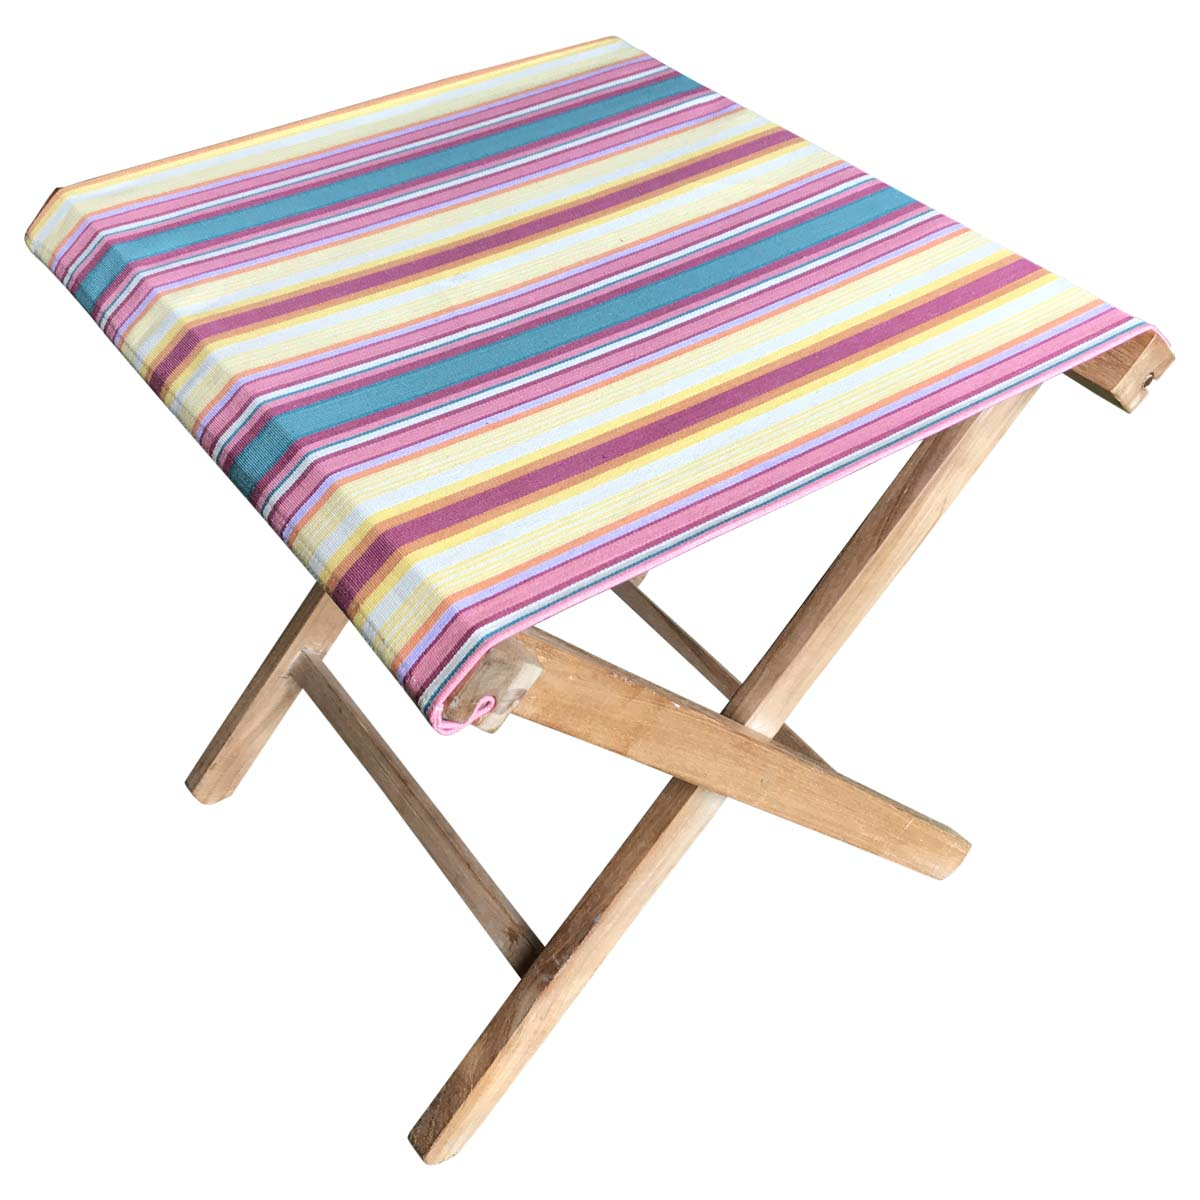 yellow, pink, green - Portable Folding Stools with Striped Seats